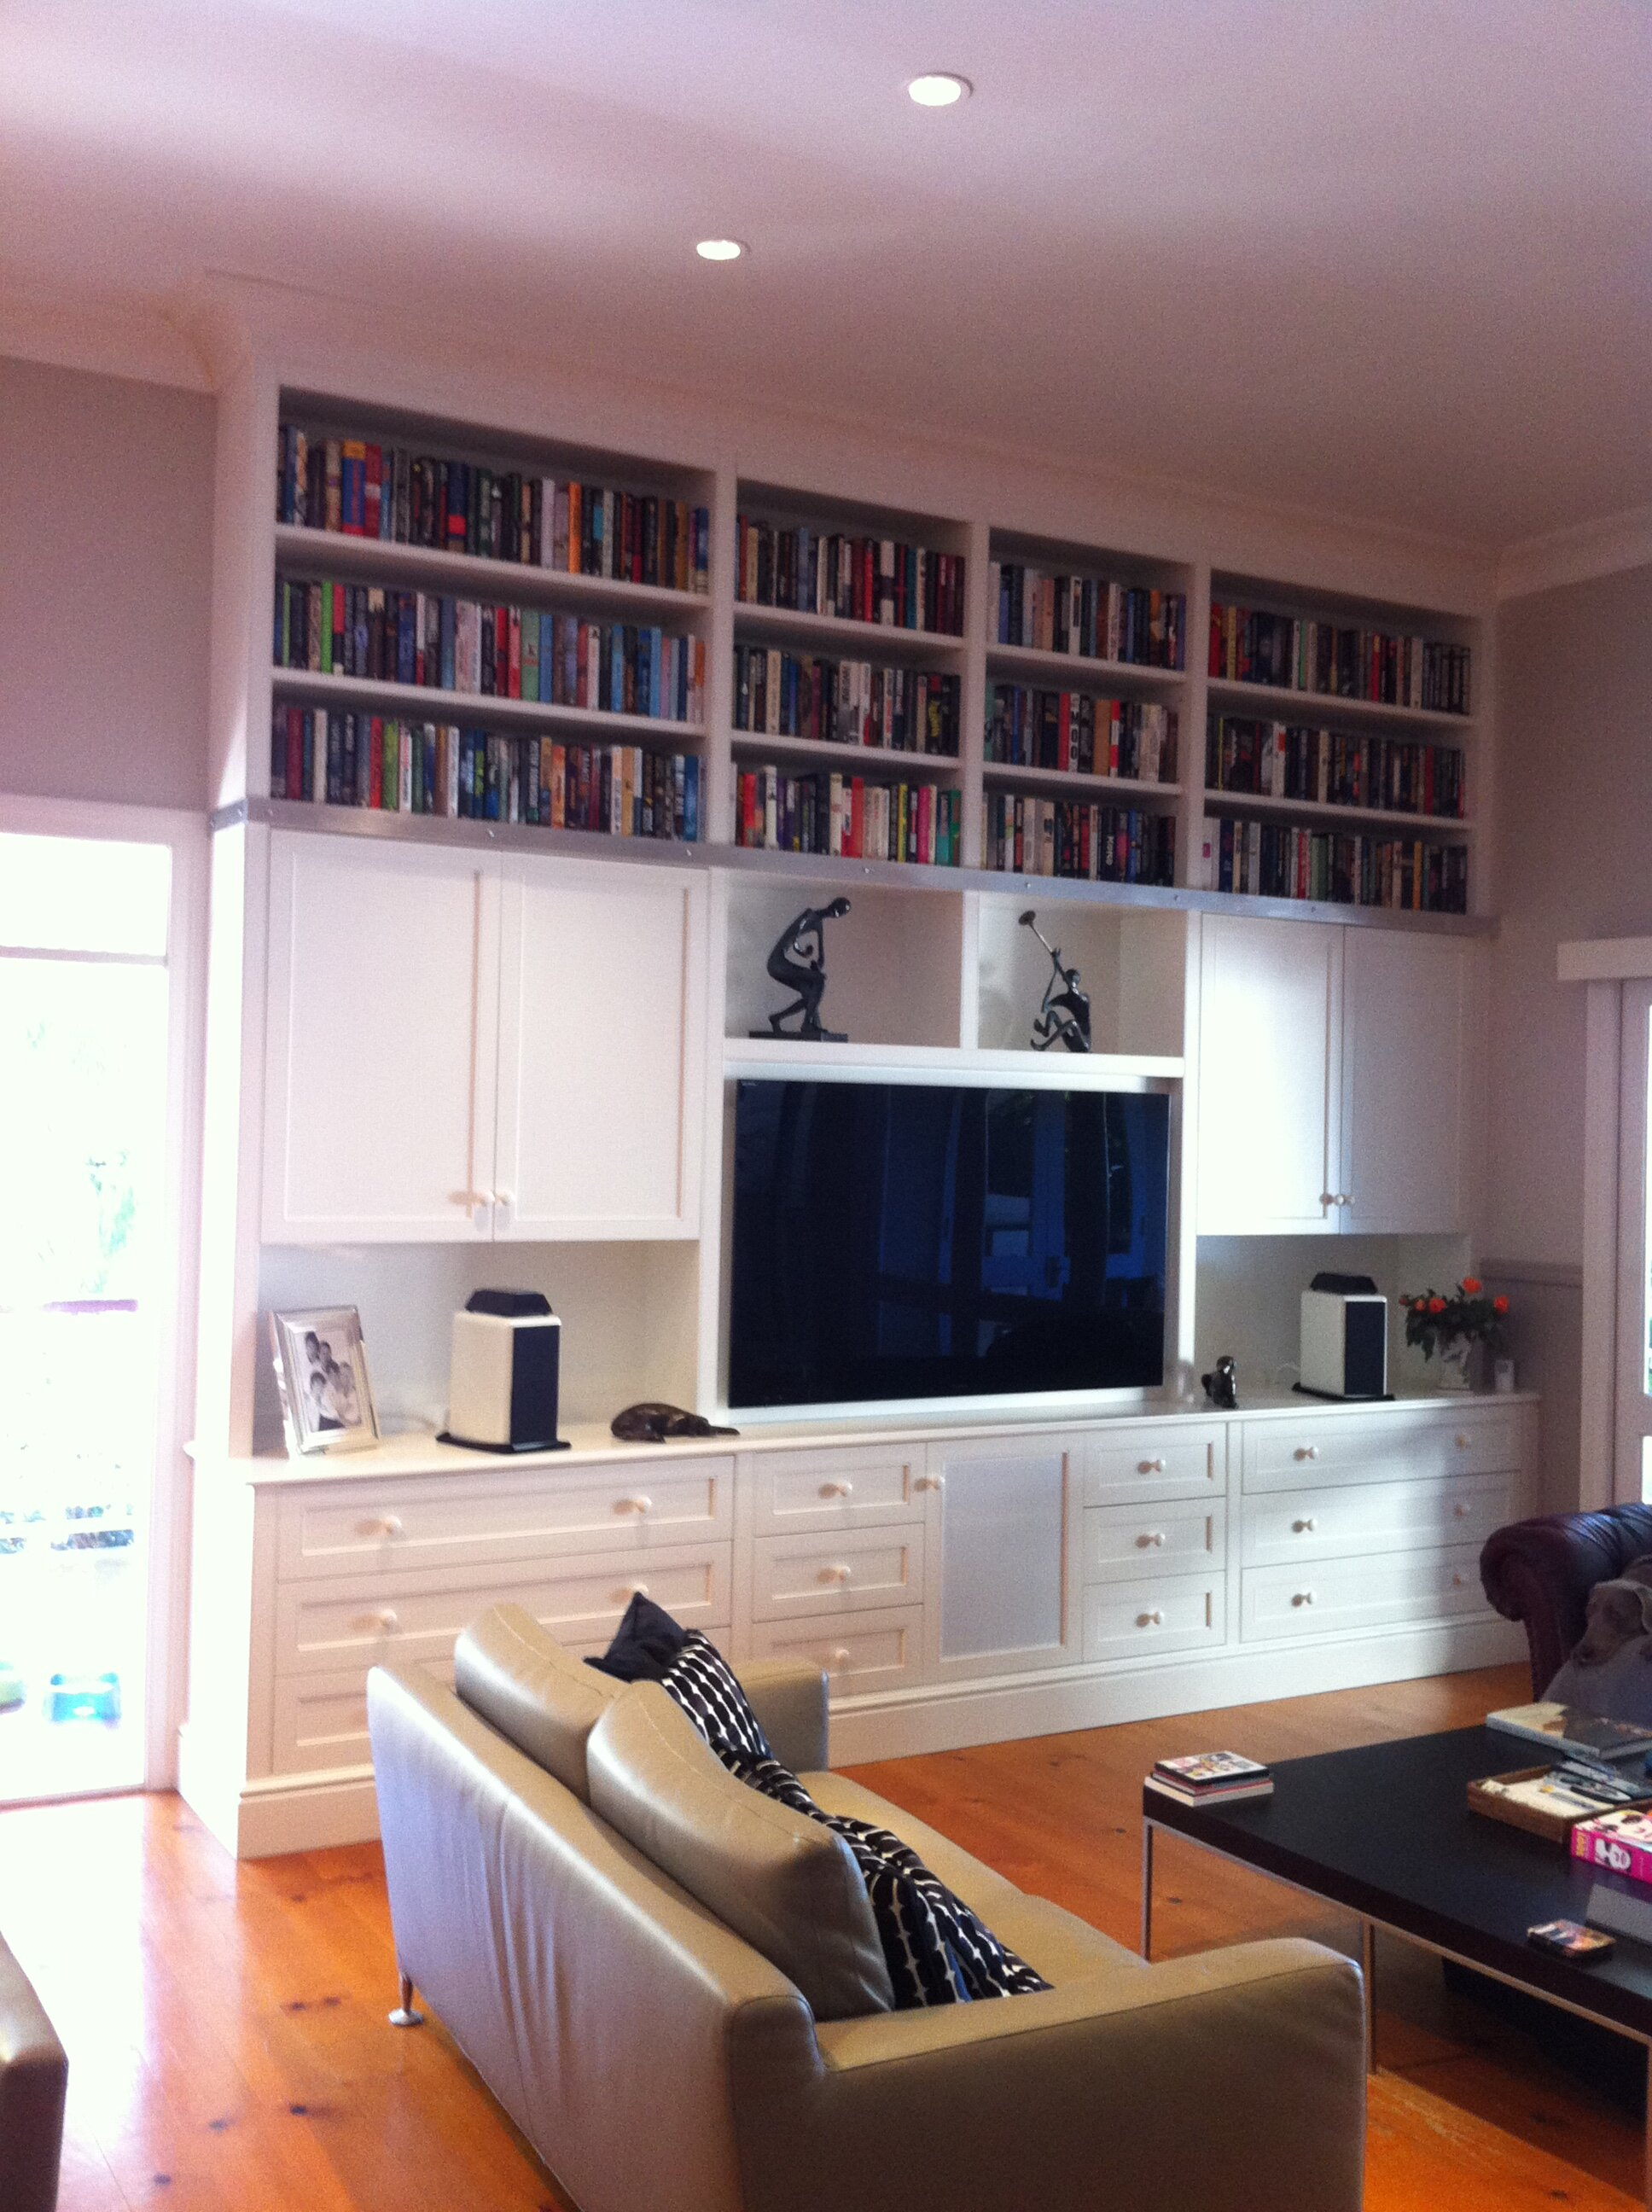 White gloss bookcase, providing a wonderful distinction between wall and floor